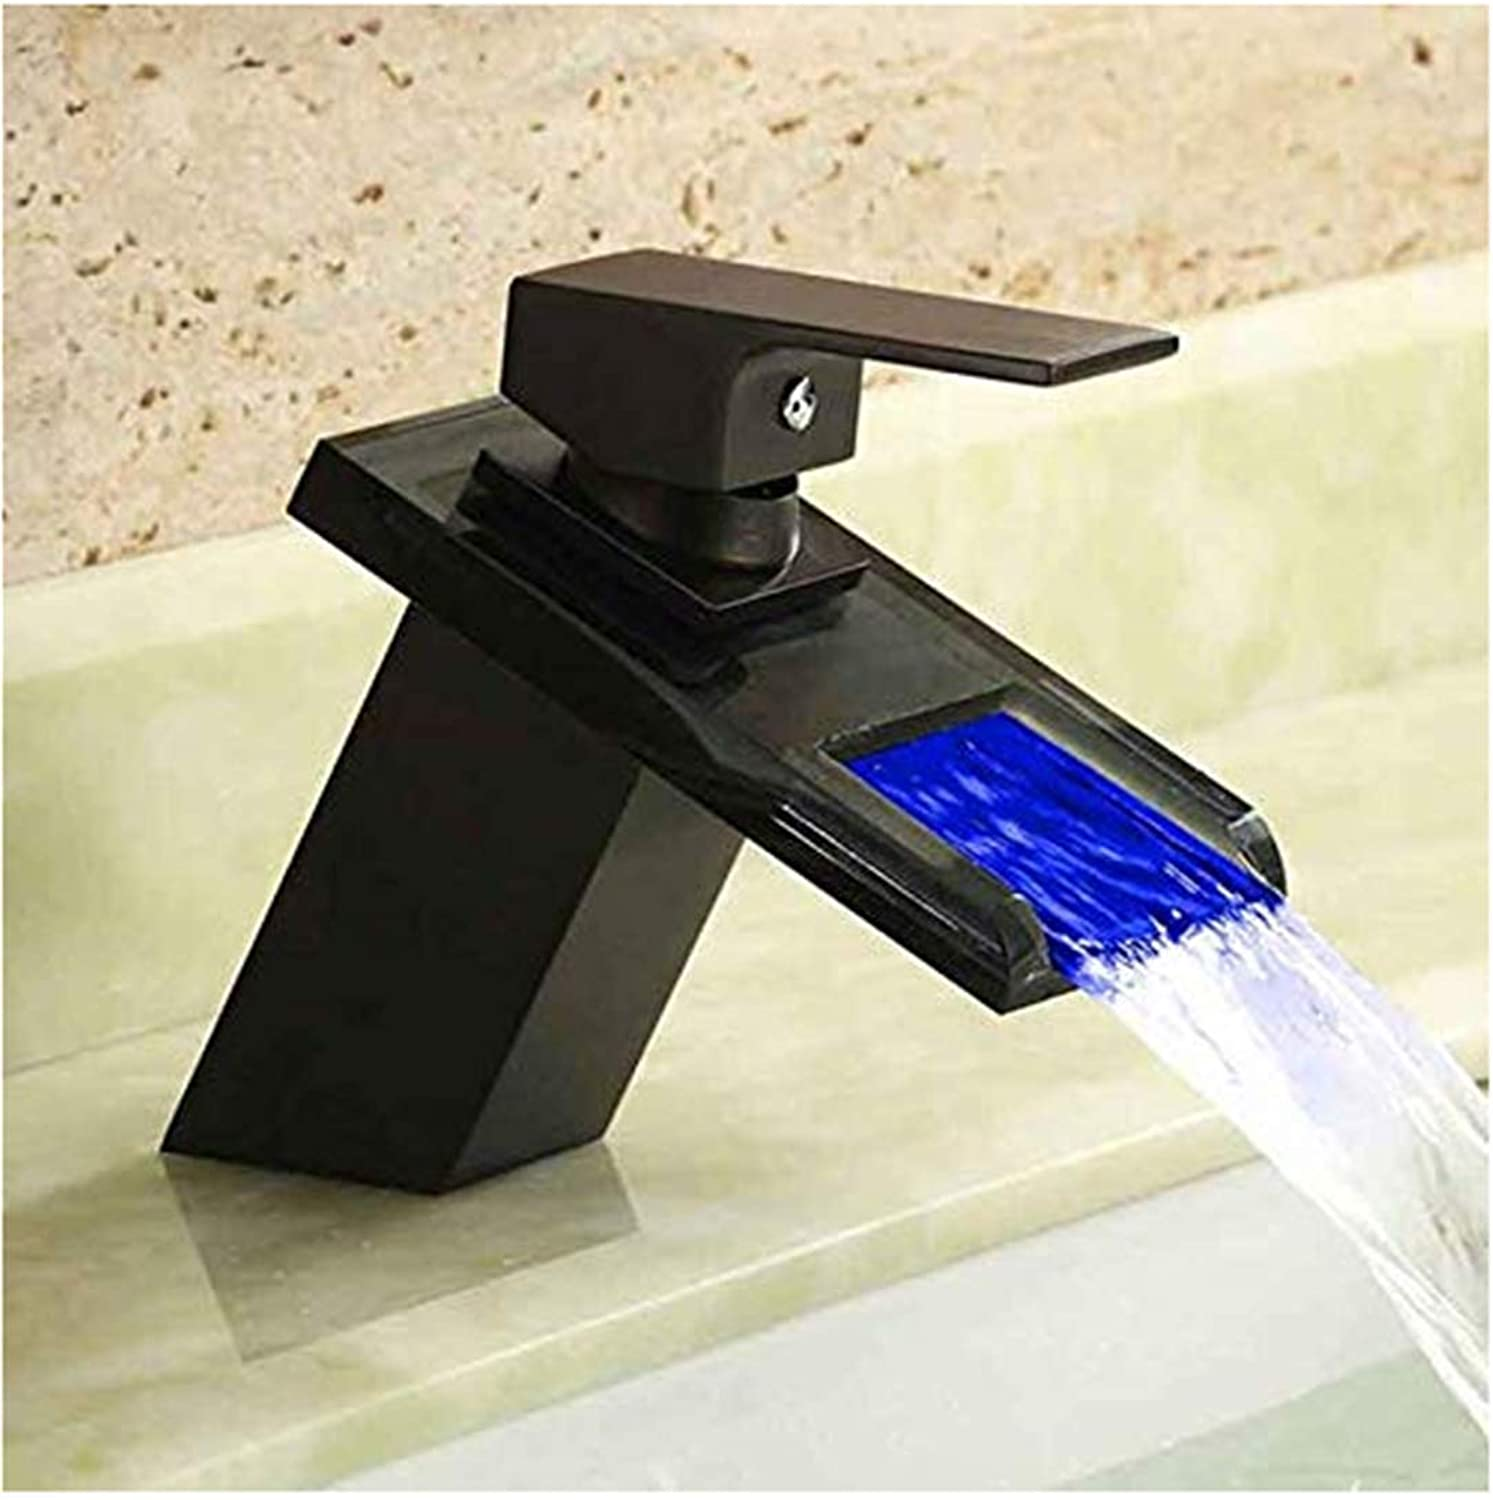 Modern Double Basin Sink Hot and Cold Water Faucet Control Glass Led Single Hole Black Ancient Black with Light Art Basin color Faucet